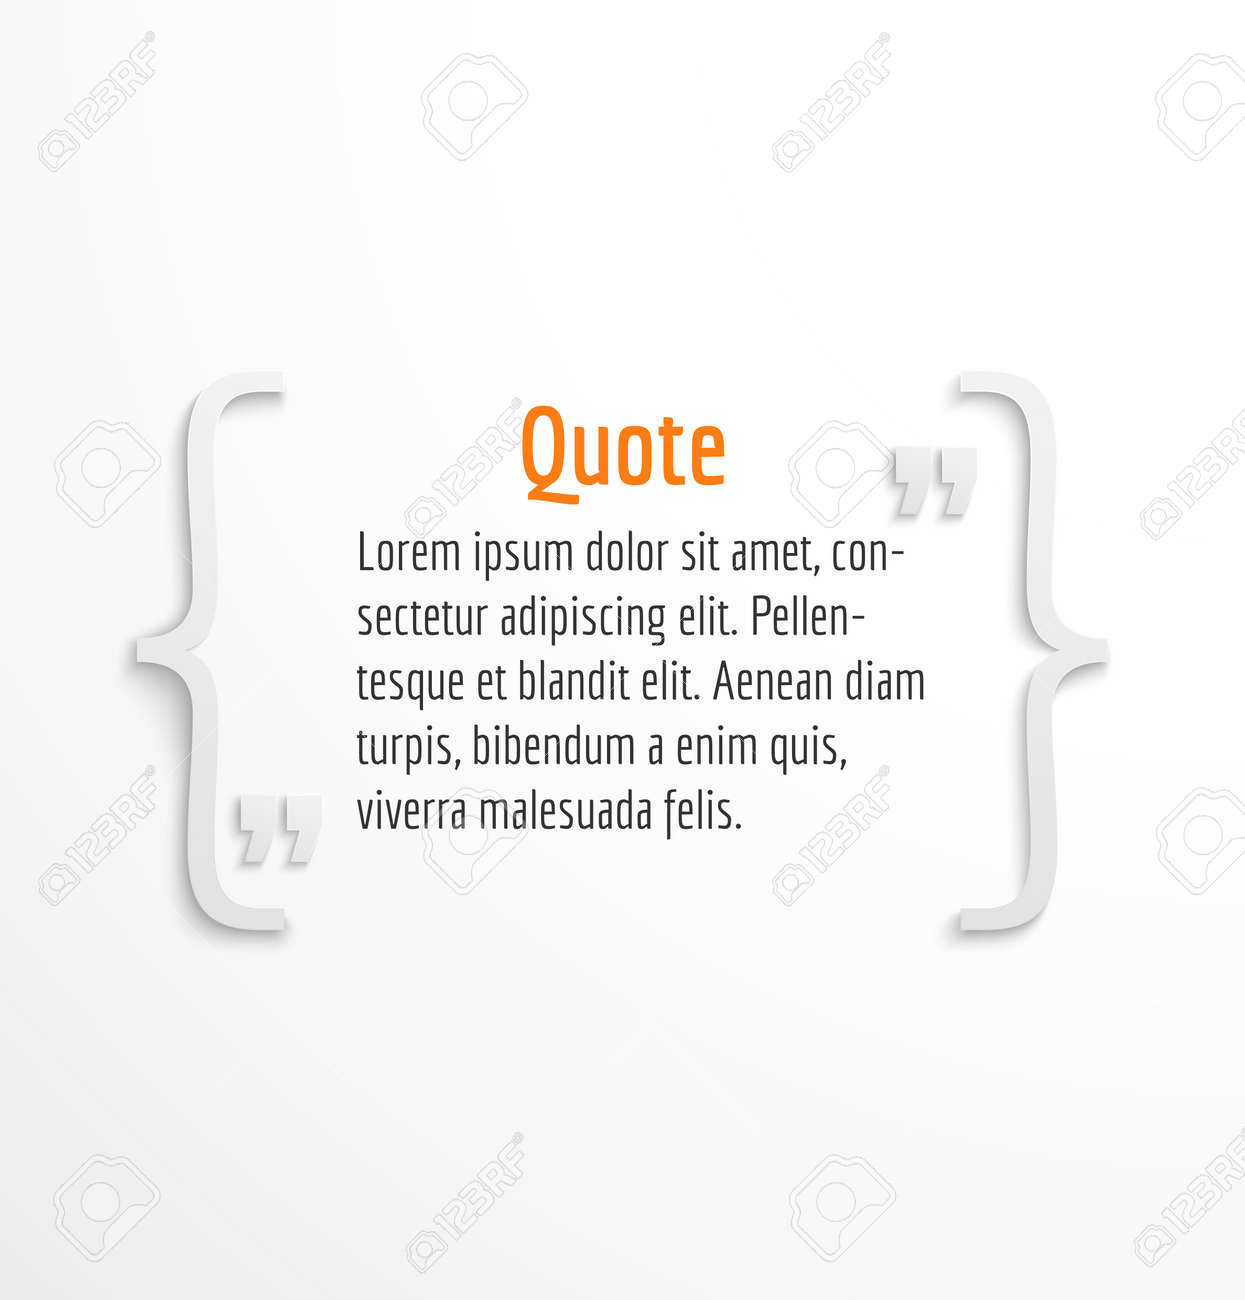 quote blank with text message bubble dialog box template on